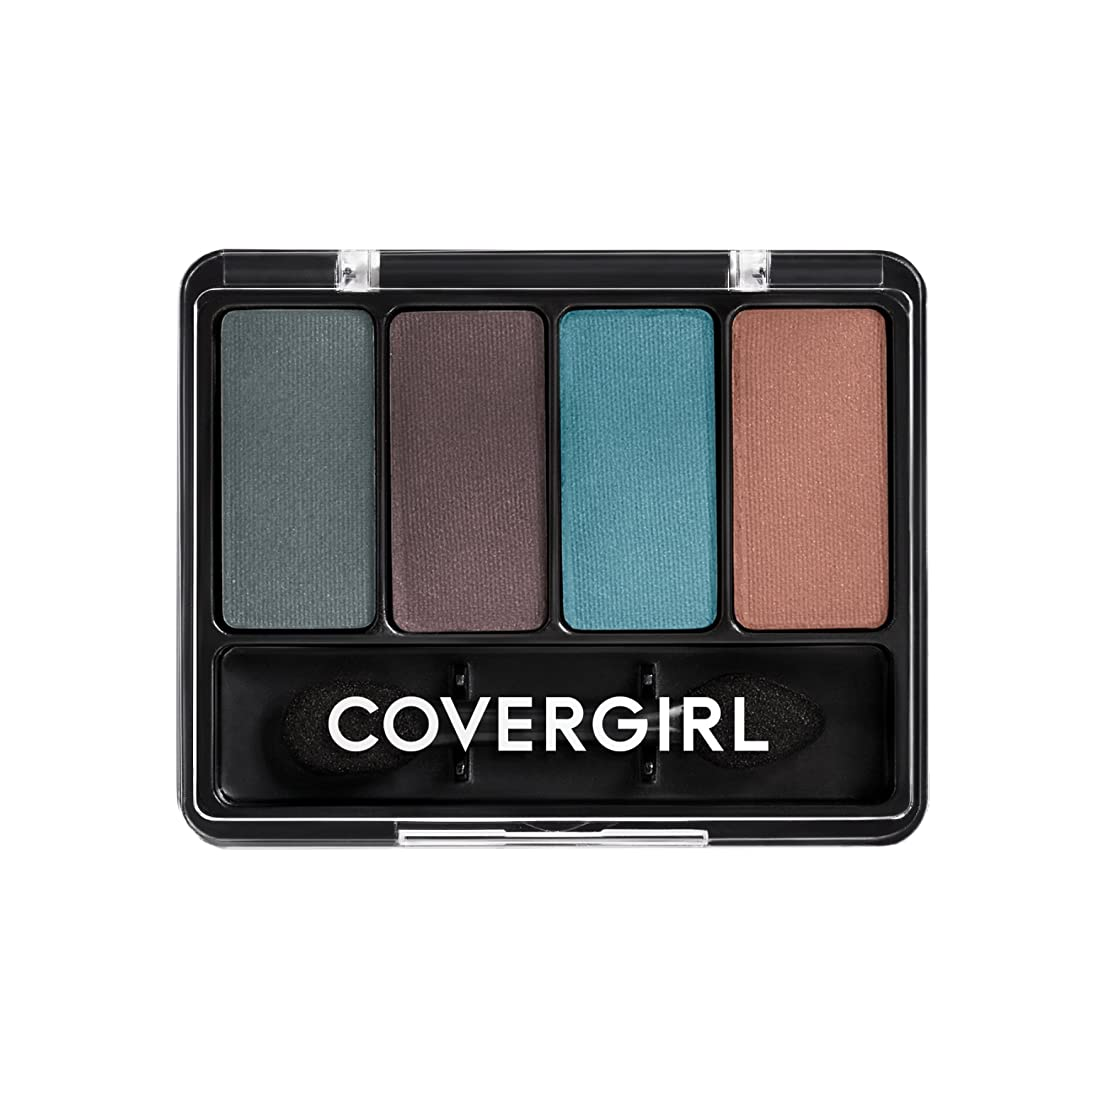 世界まろやかな閃光COVERGIRL EYE ENHANCERS EYE SHADOW #276 SUGAR COATED